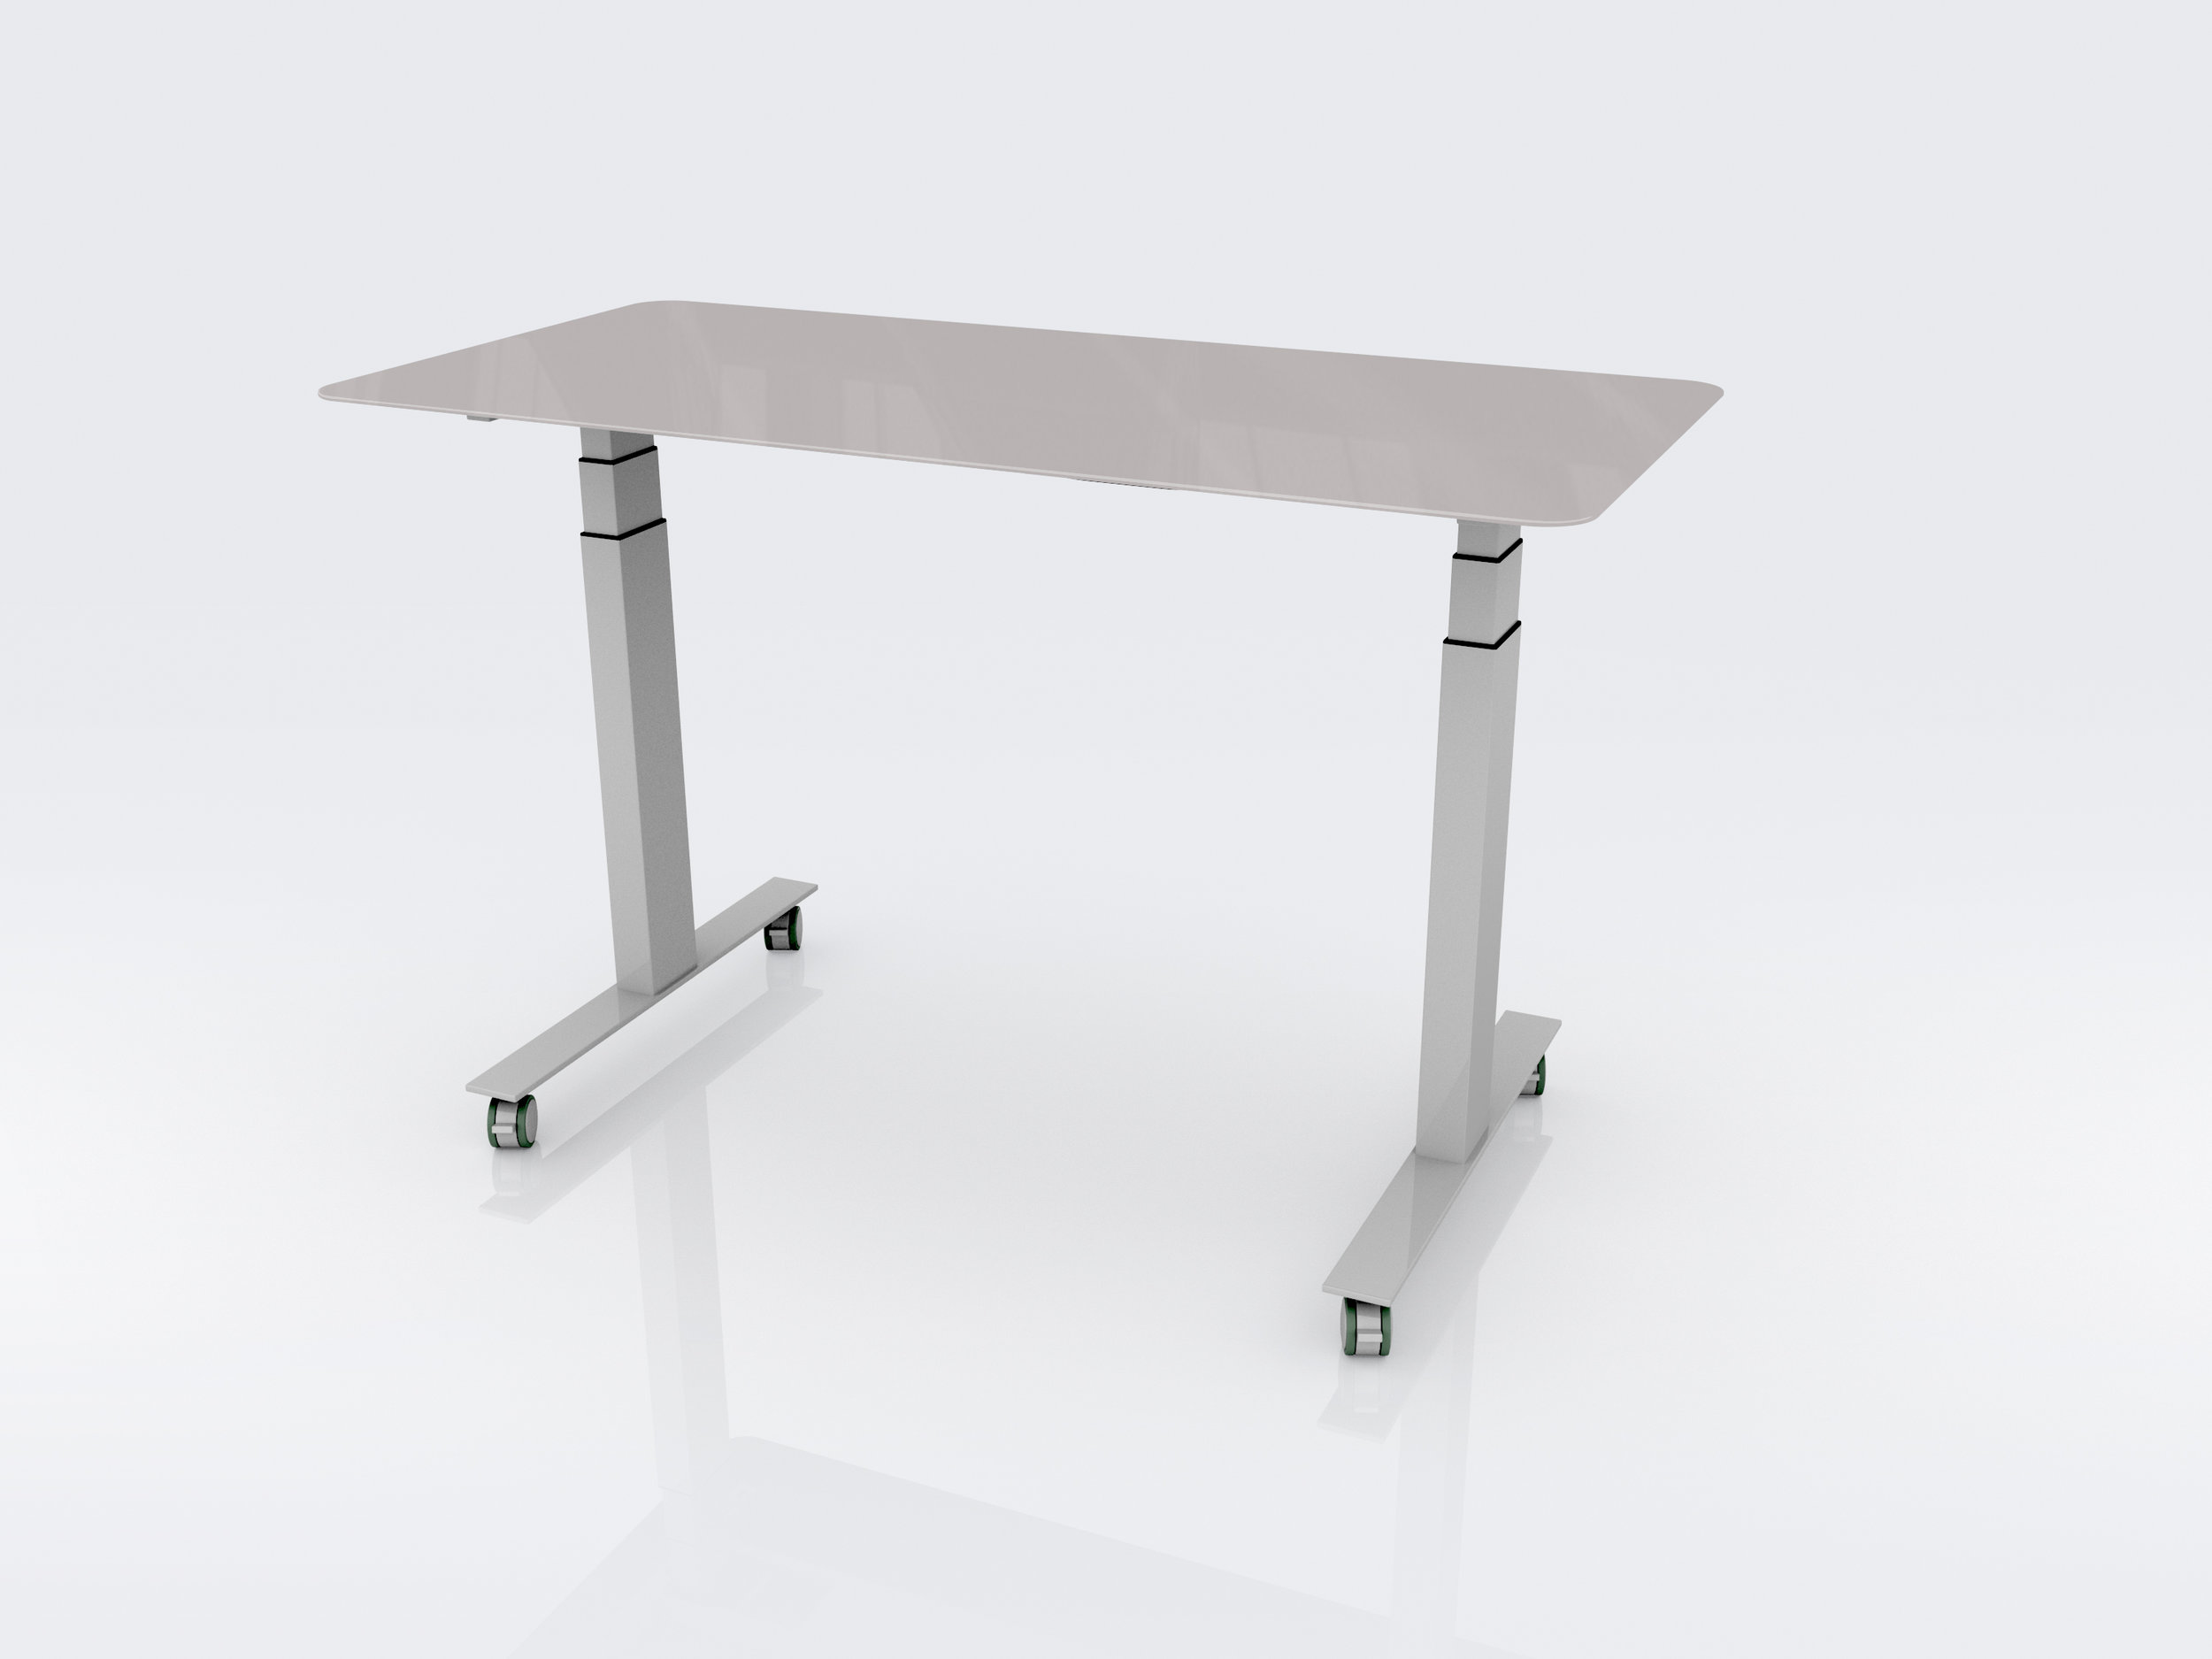 Glass Tables - Assembly Instructions